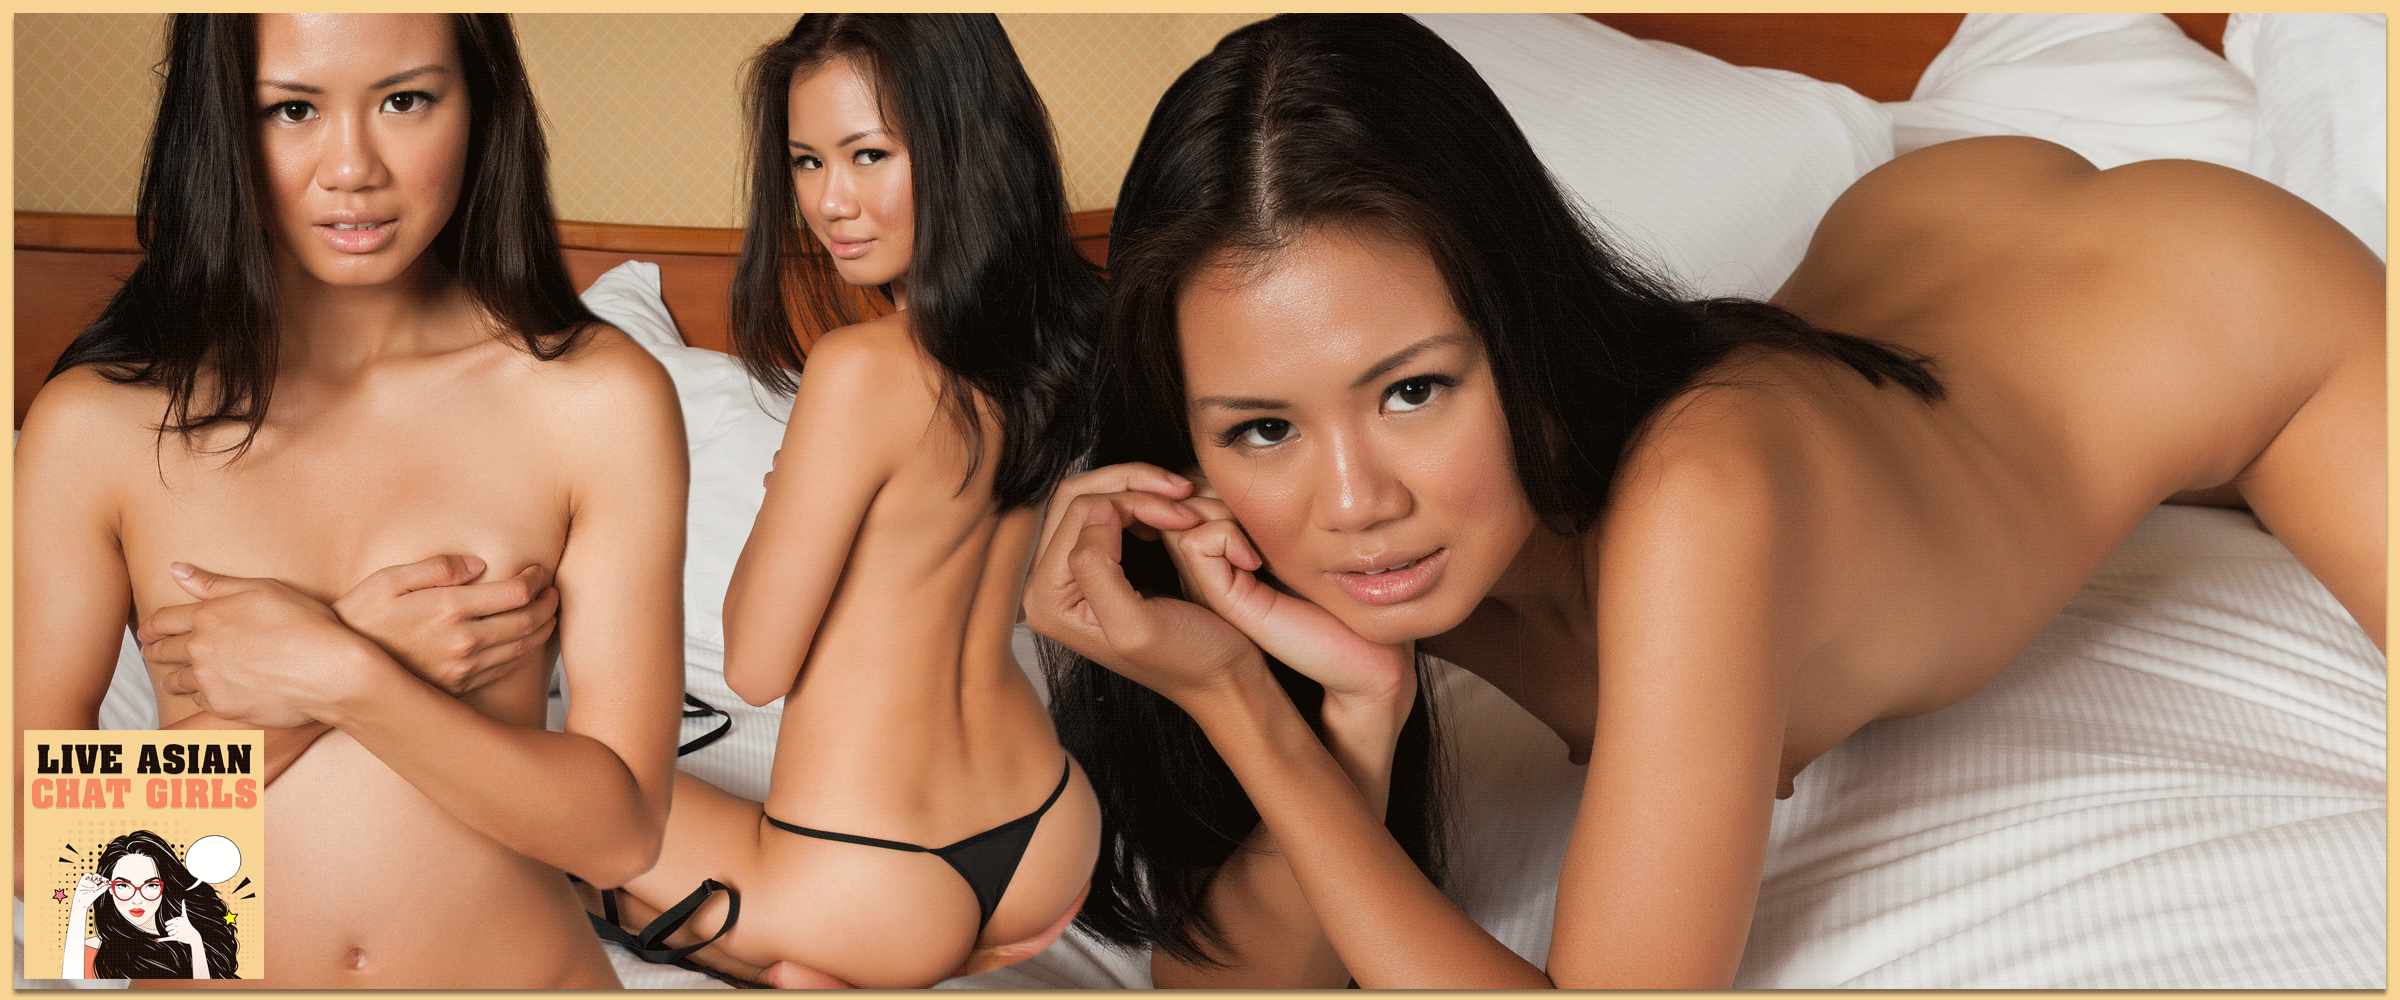 Asian girls live chat